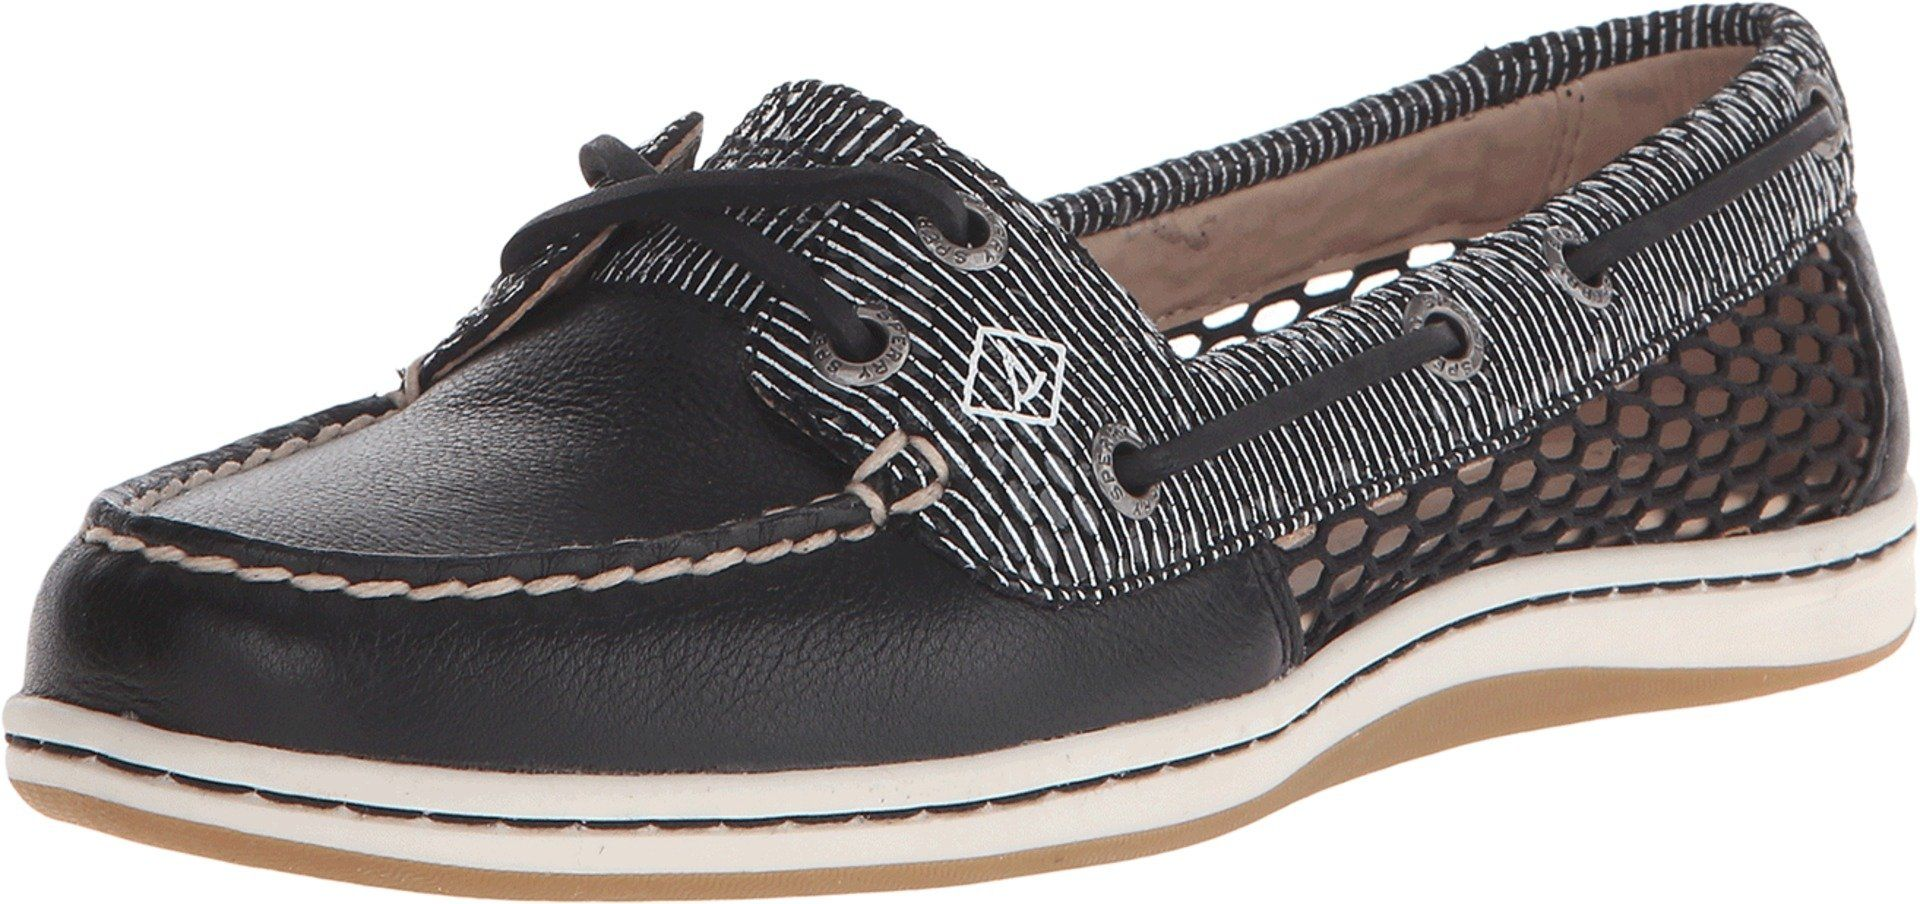 Sperry Women/'s Firefish Stripe Leather Fabric Ankle-High Fashion Sneaker